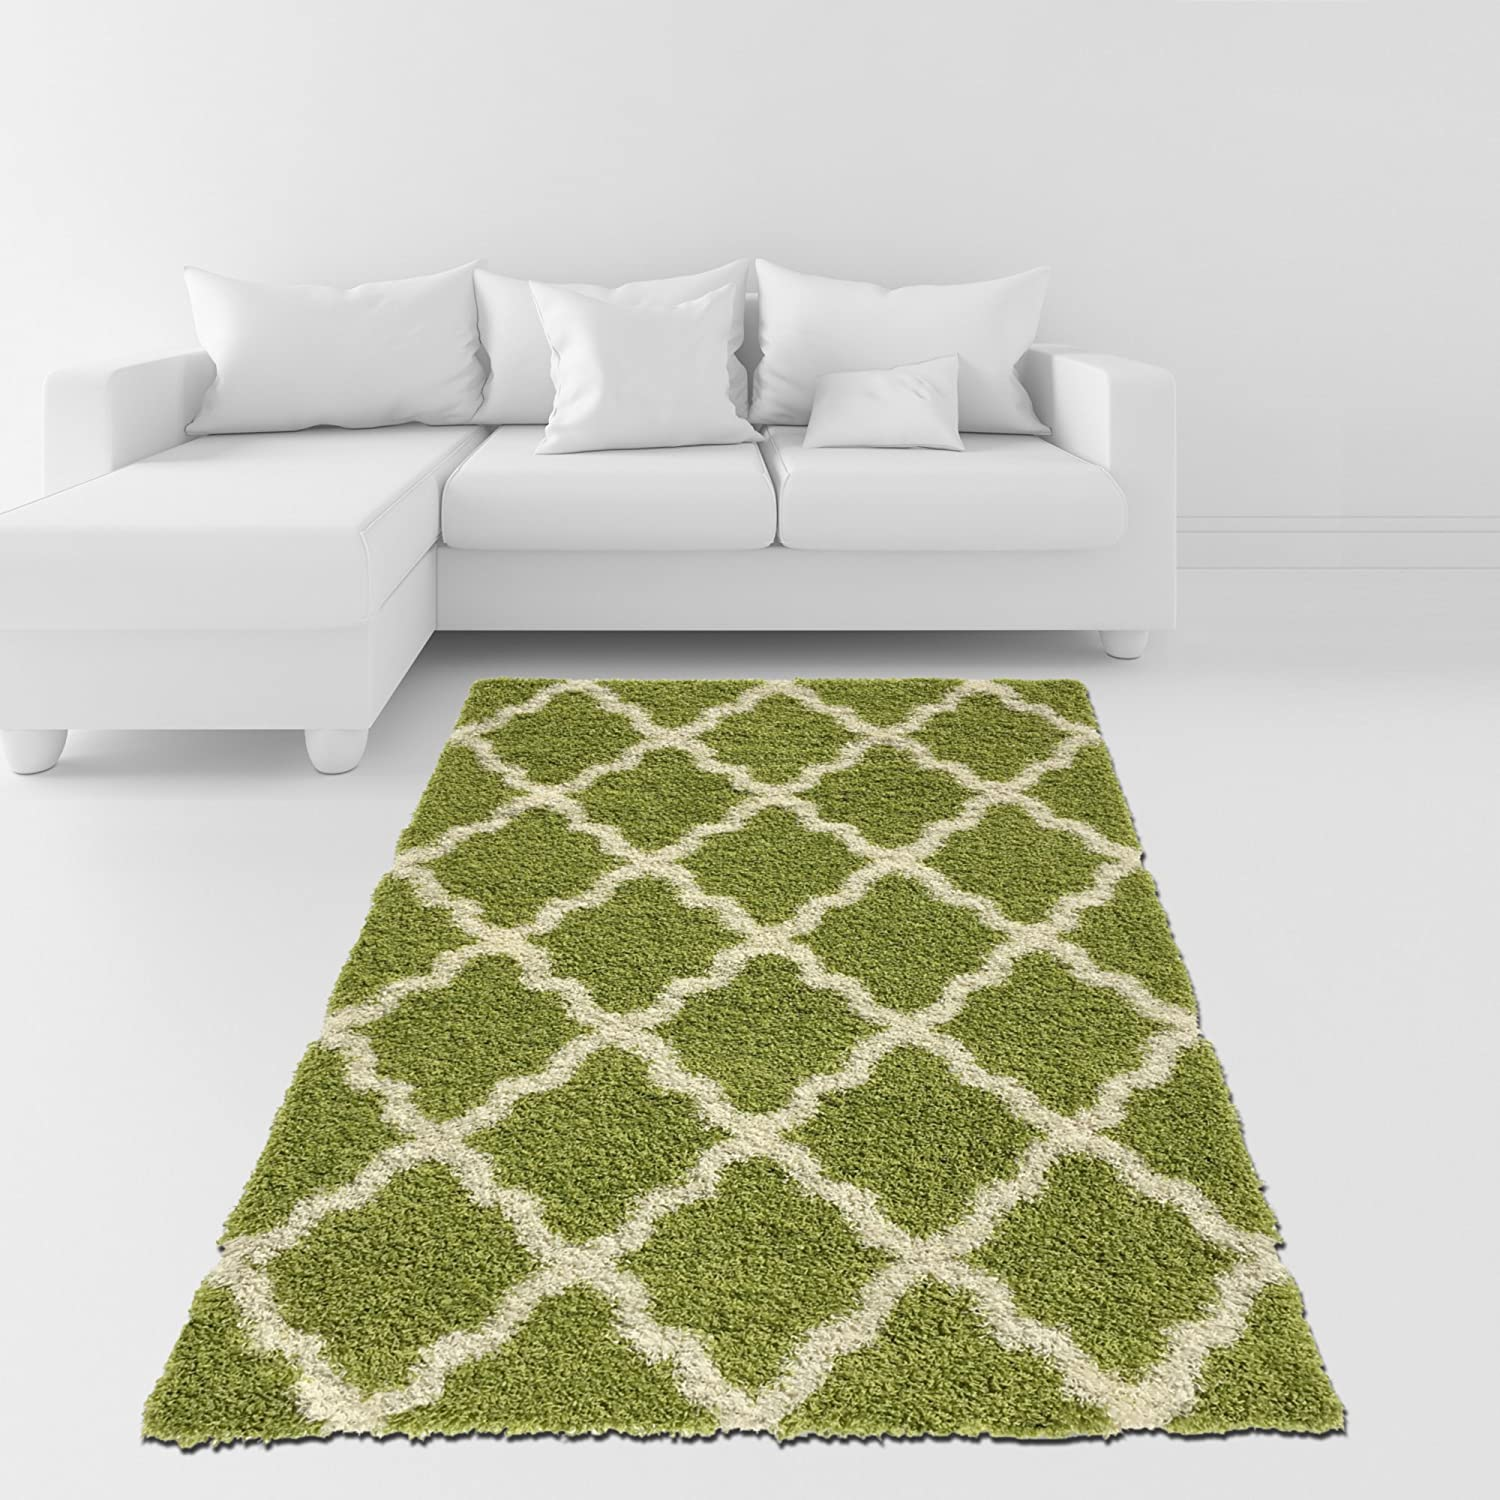 Amazon Com Soft Shag Area Rug 5x7 Moroccan Trellis Green Ivory Shaggy Rug Contemporary Area Rugs For Living Room Bedroom Kitchen Decorative Modern Shaggy